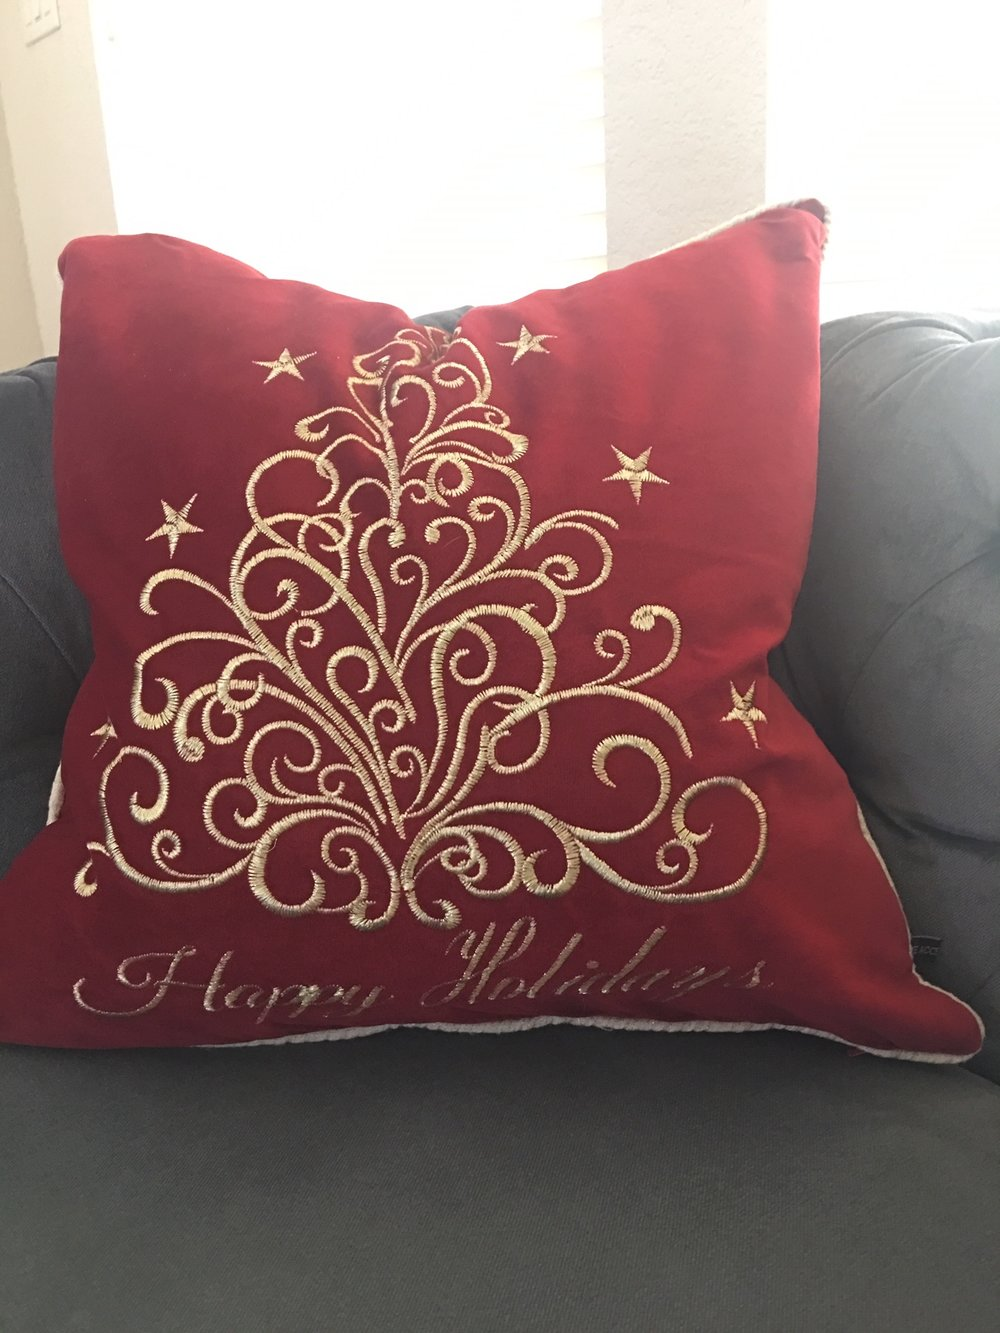 "- ""Happy Holidays"" pillow covers"